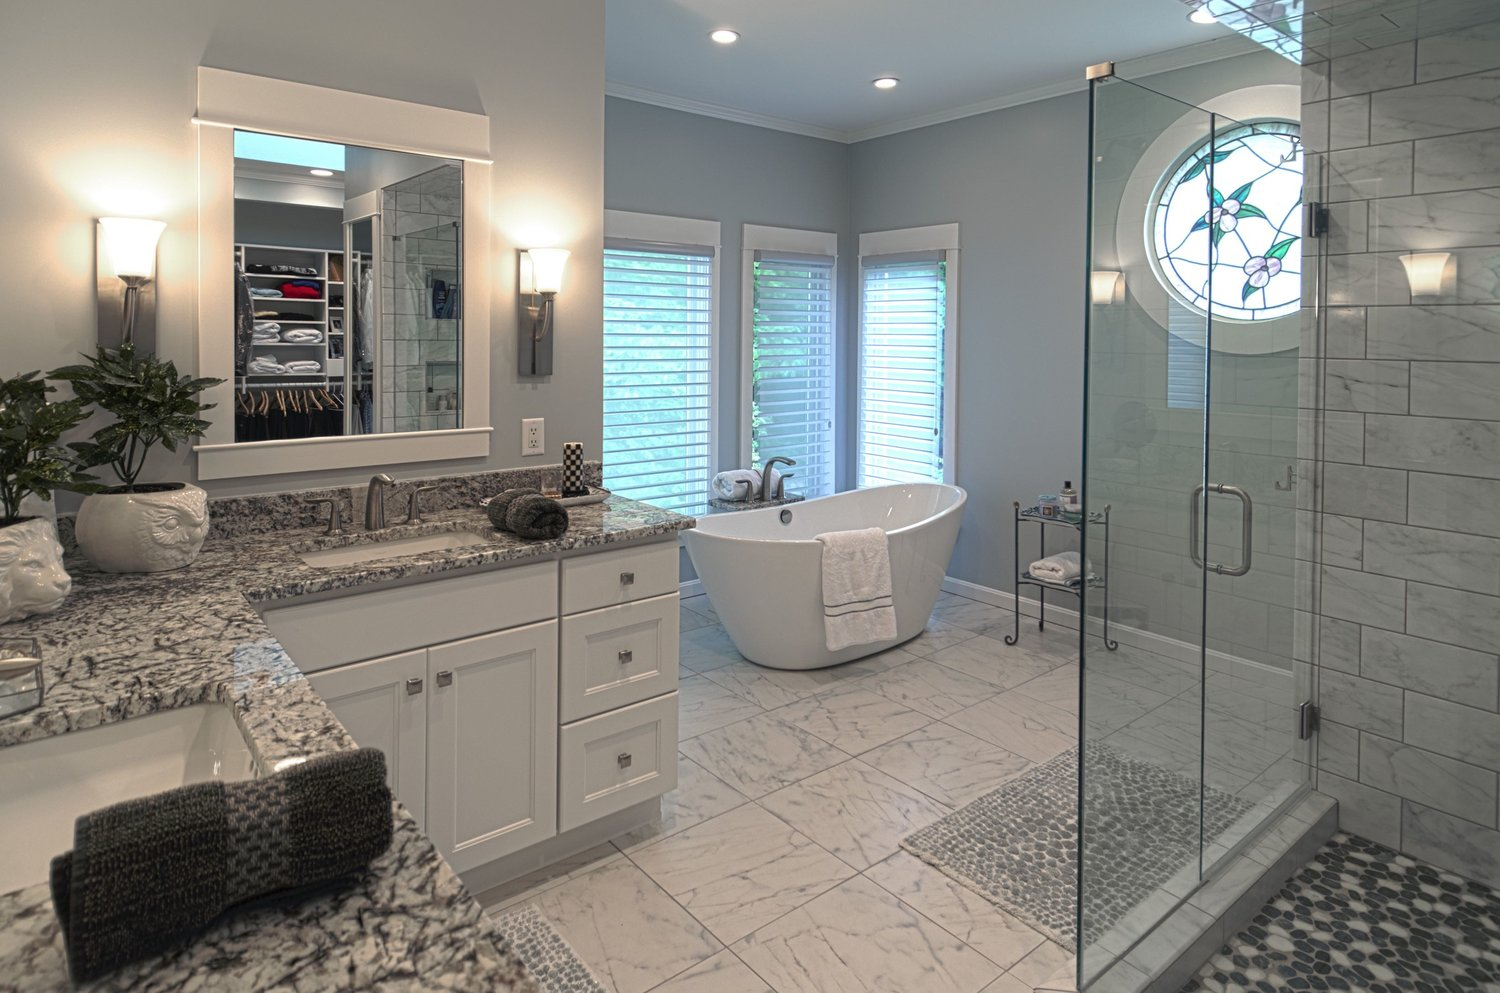 How much would it costs for a bathroom remodeling?